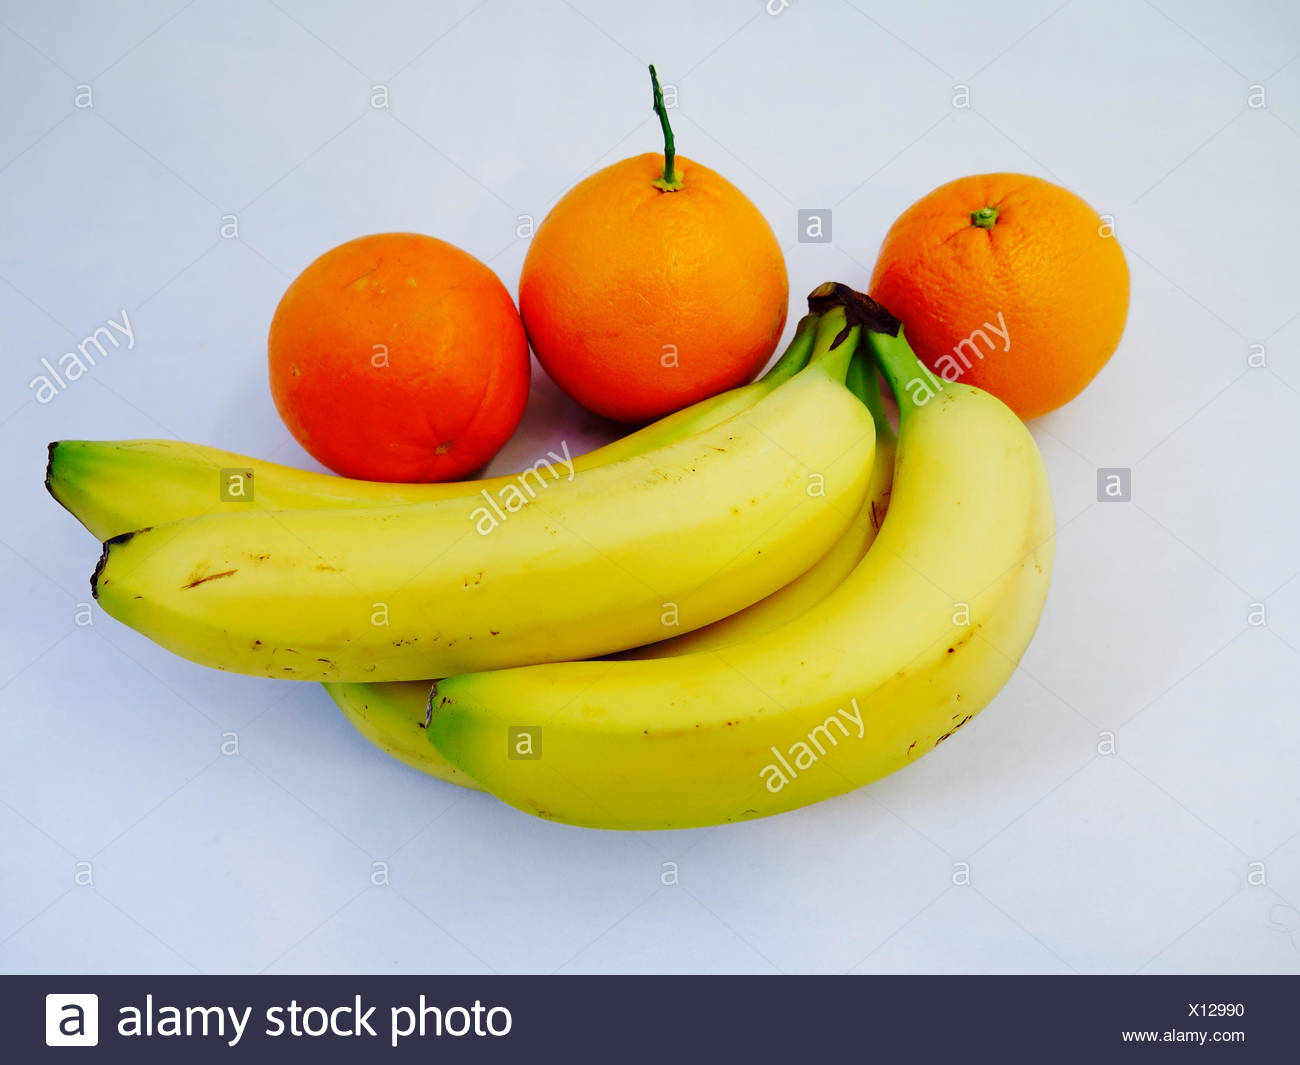 High Angle View Of Ripe Bananas And Oranges On White Background - Stock Image